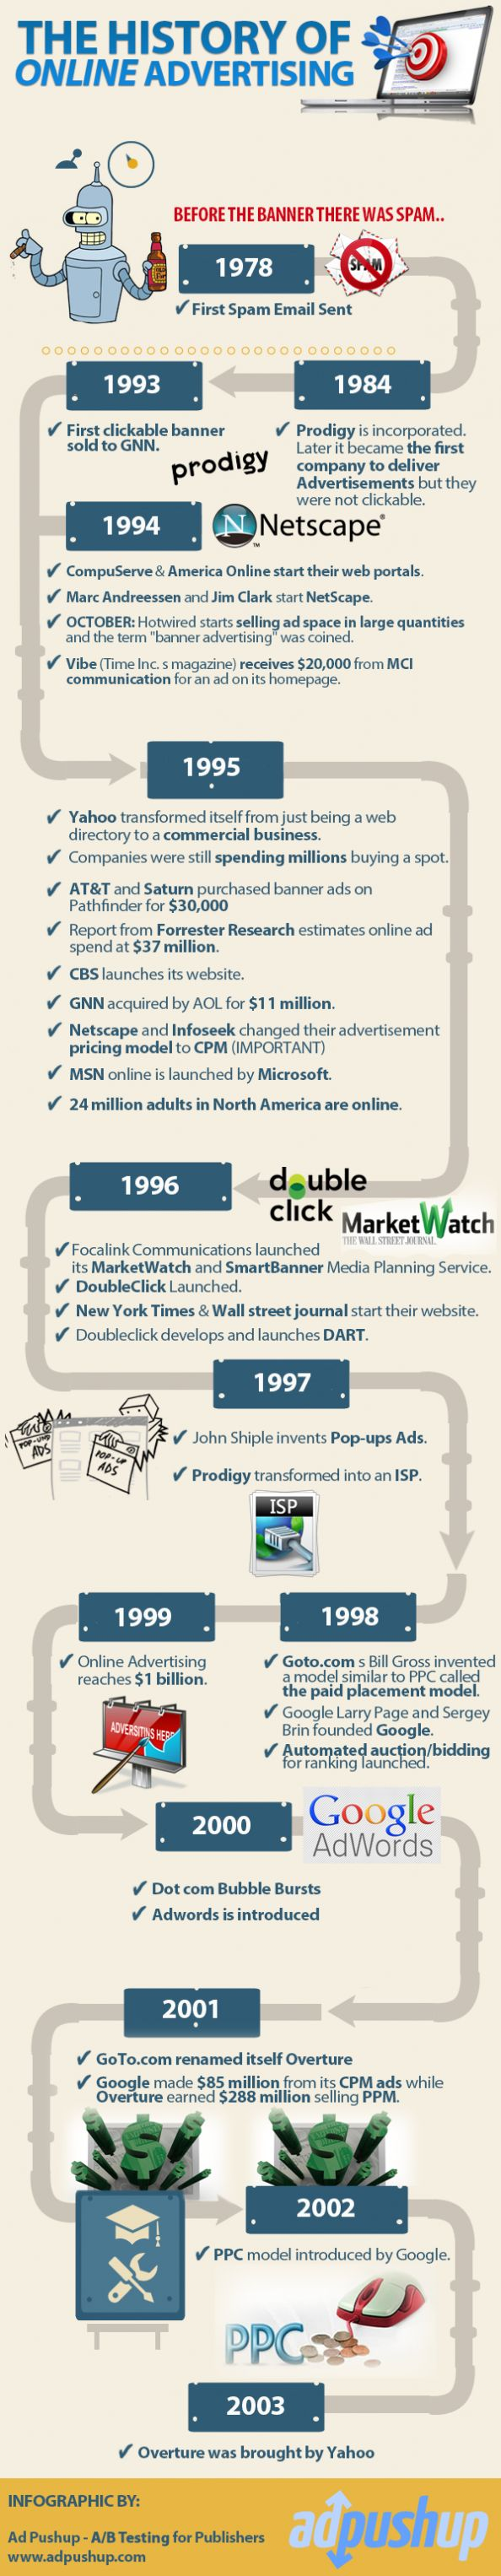 {Infographic} History of Online Advertising. It's interesting to see how advertising has evolved overtime. *3 Stars